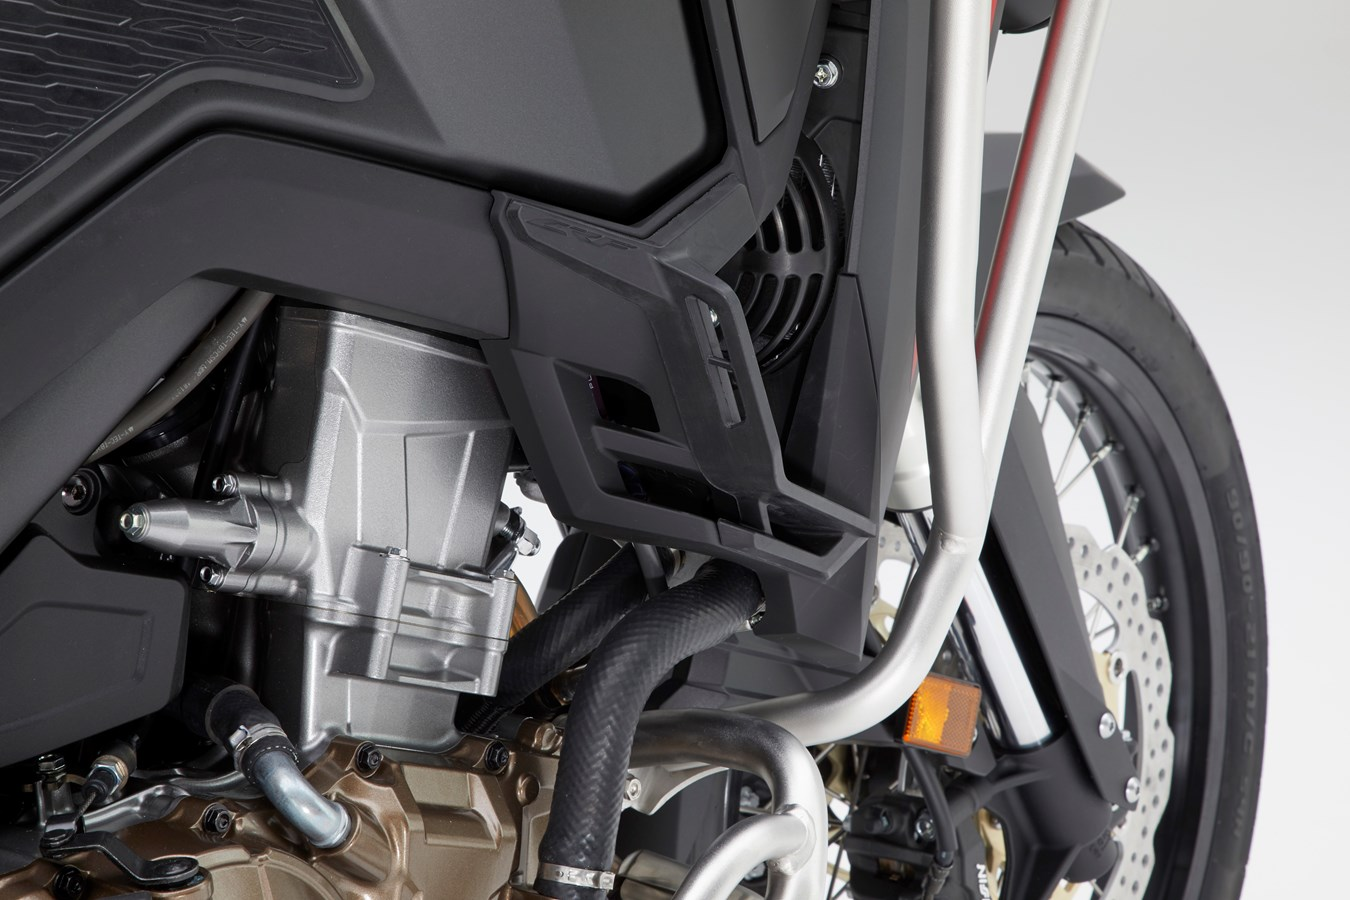 2020 Honda Africa Twin 1100 / CRF1100 Accessories: Protection, Crash Bars, Engine Guards